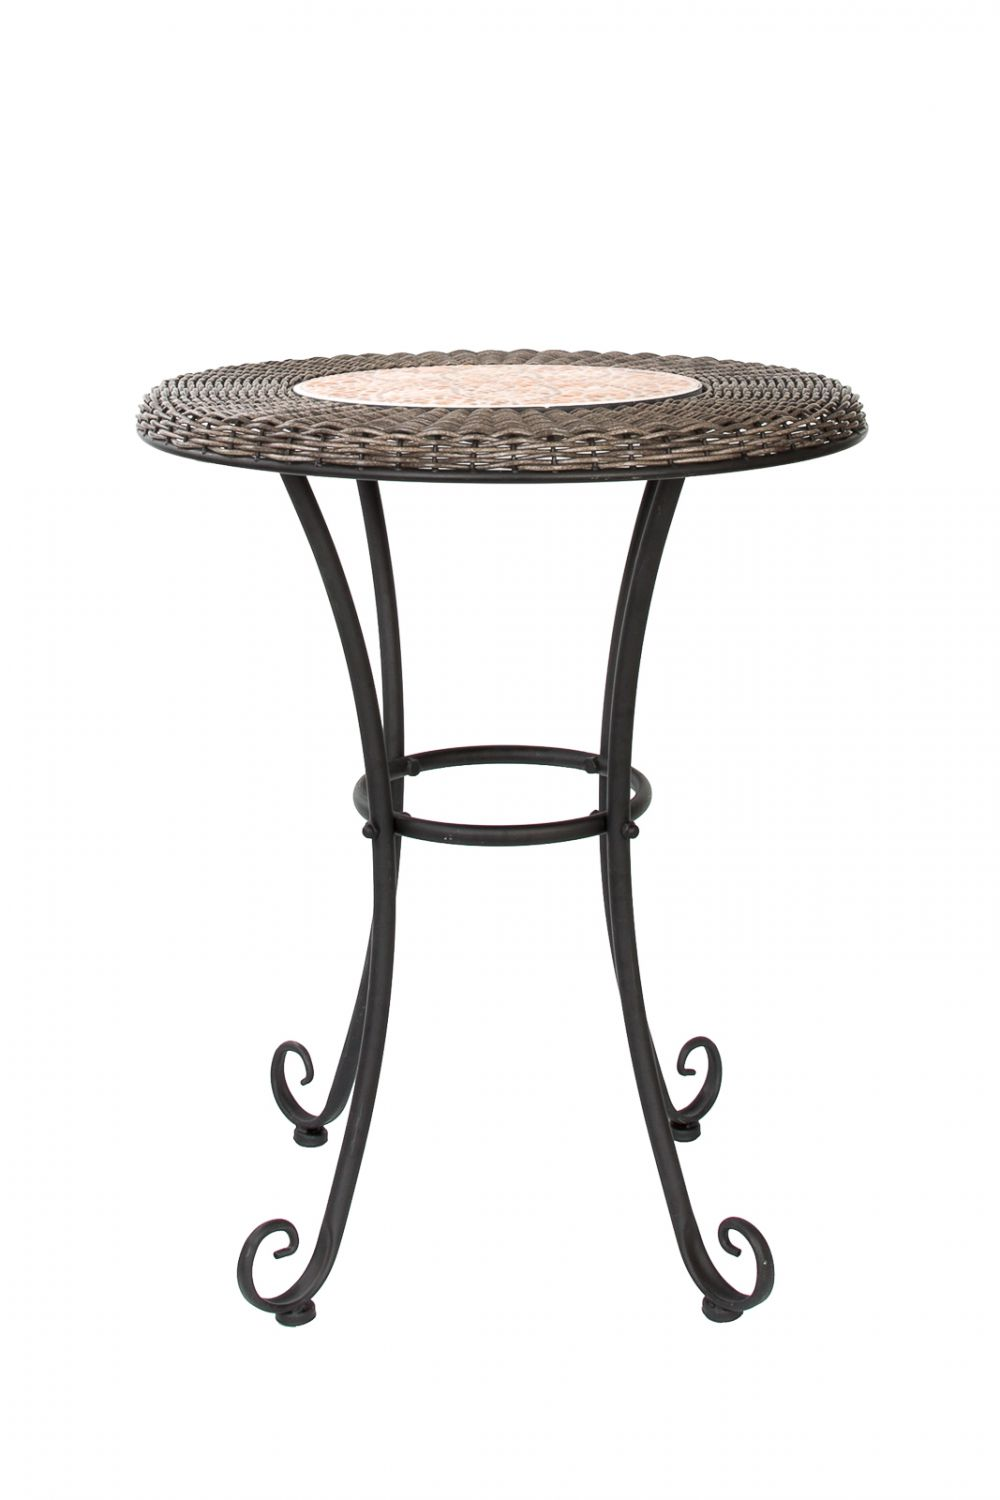 set gardenset iron garden furniture black antique style ebay